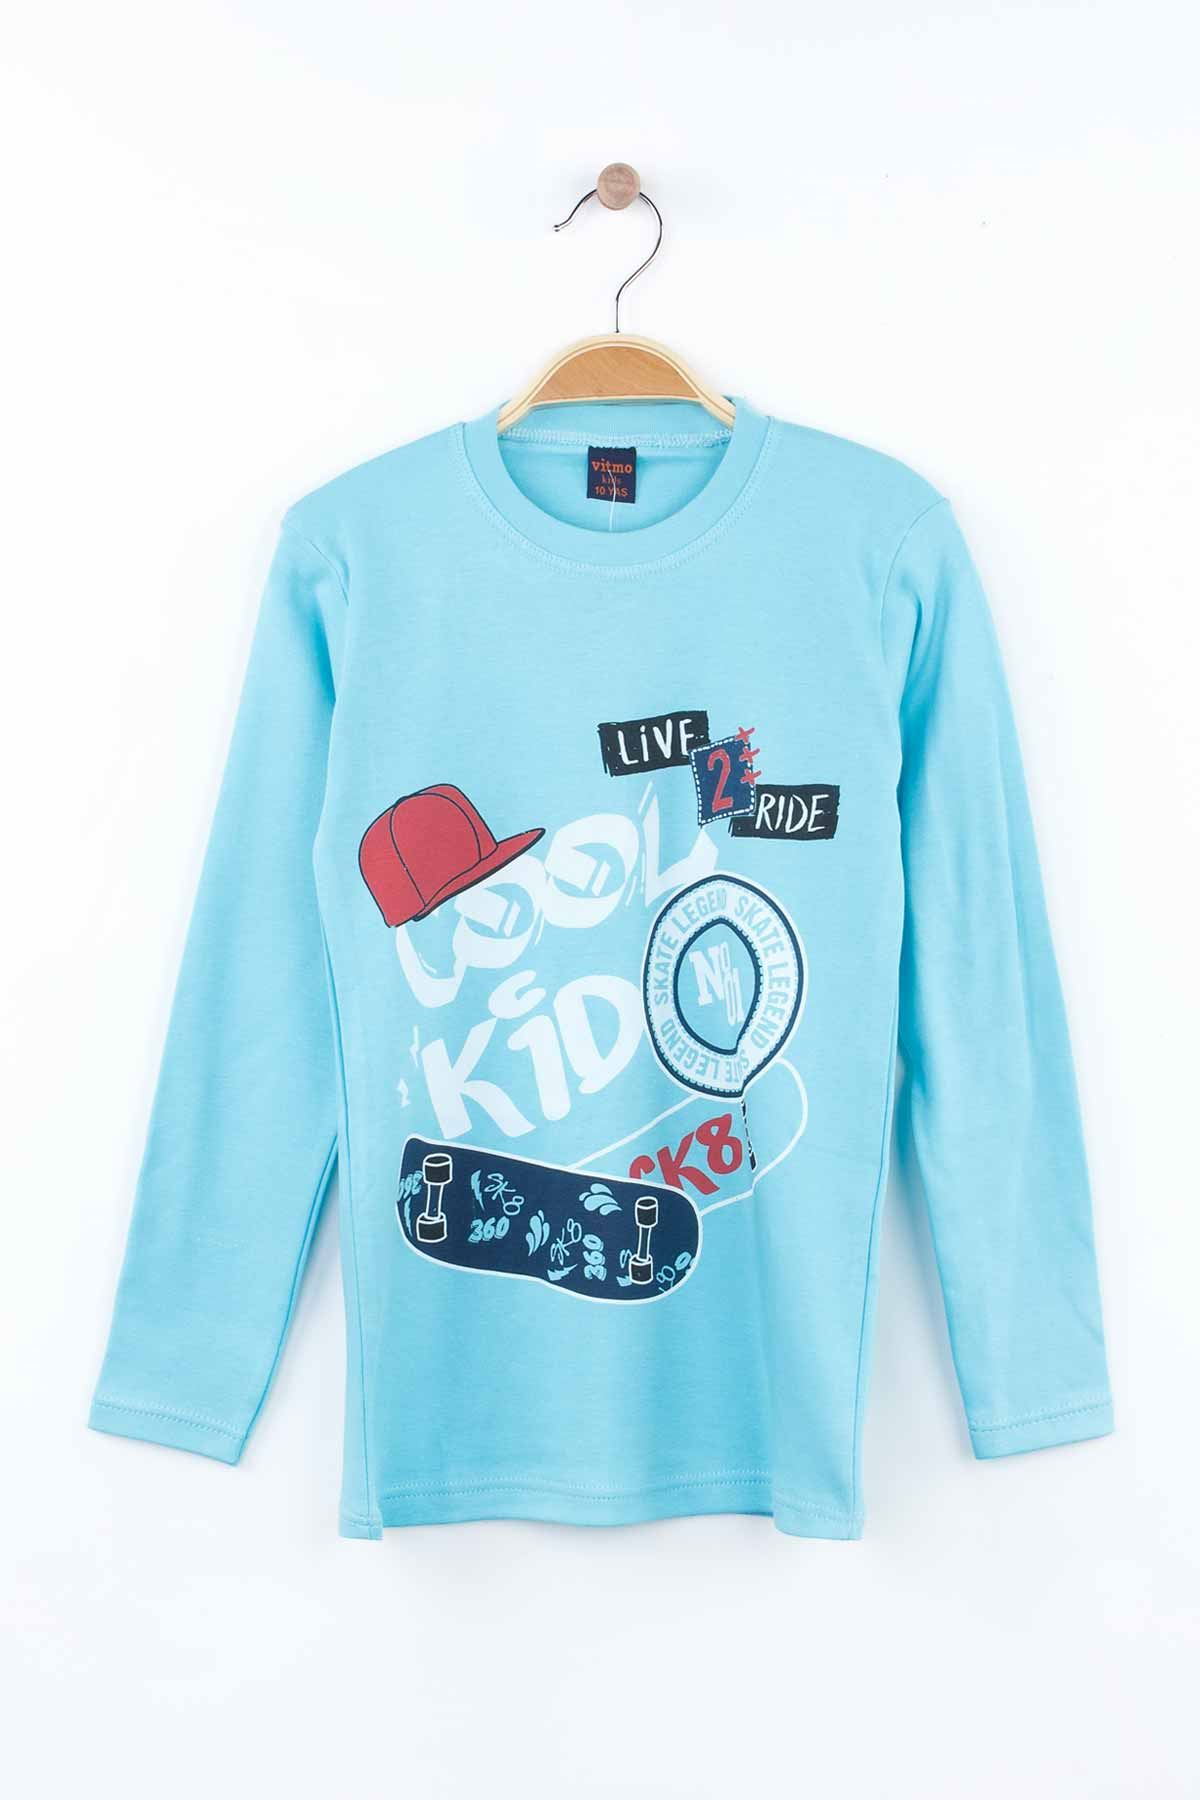 Turquoise Boys Young Pajamas Set Tracksuits Home Use Cotton Fabric Comfortable Clothes 2 Piece Boy Male Set Models